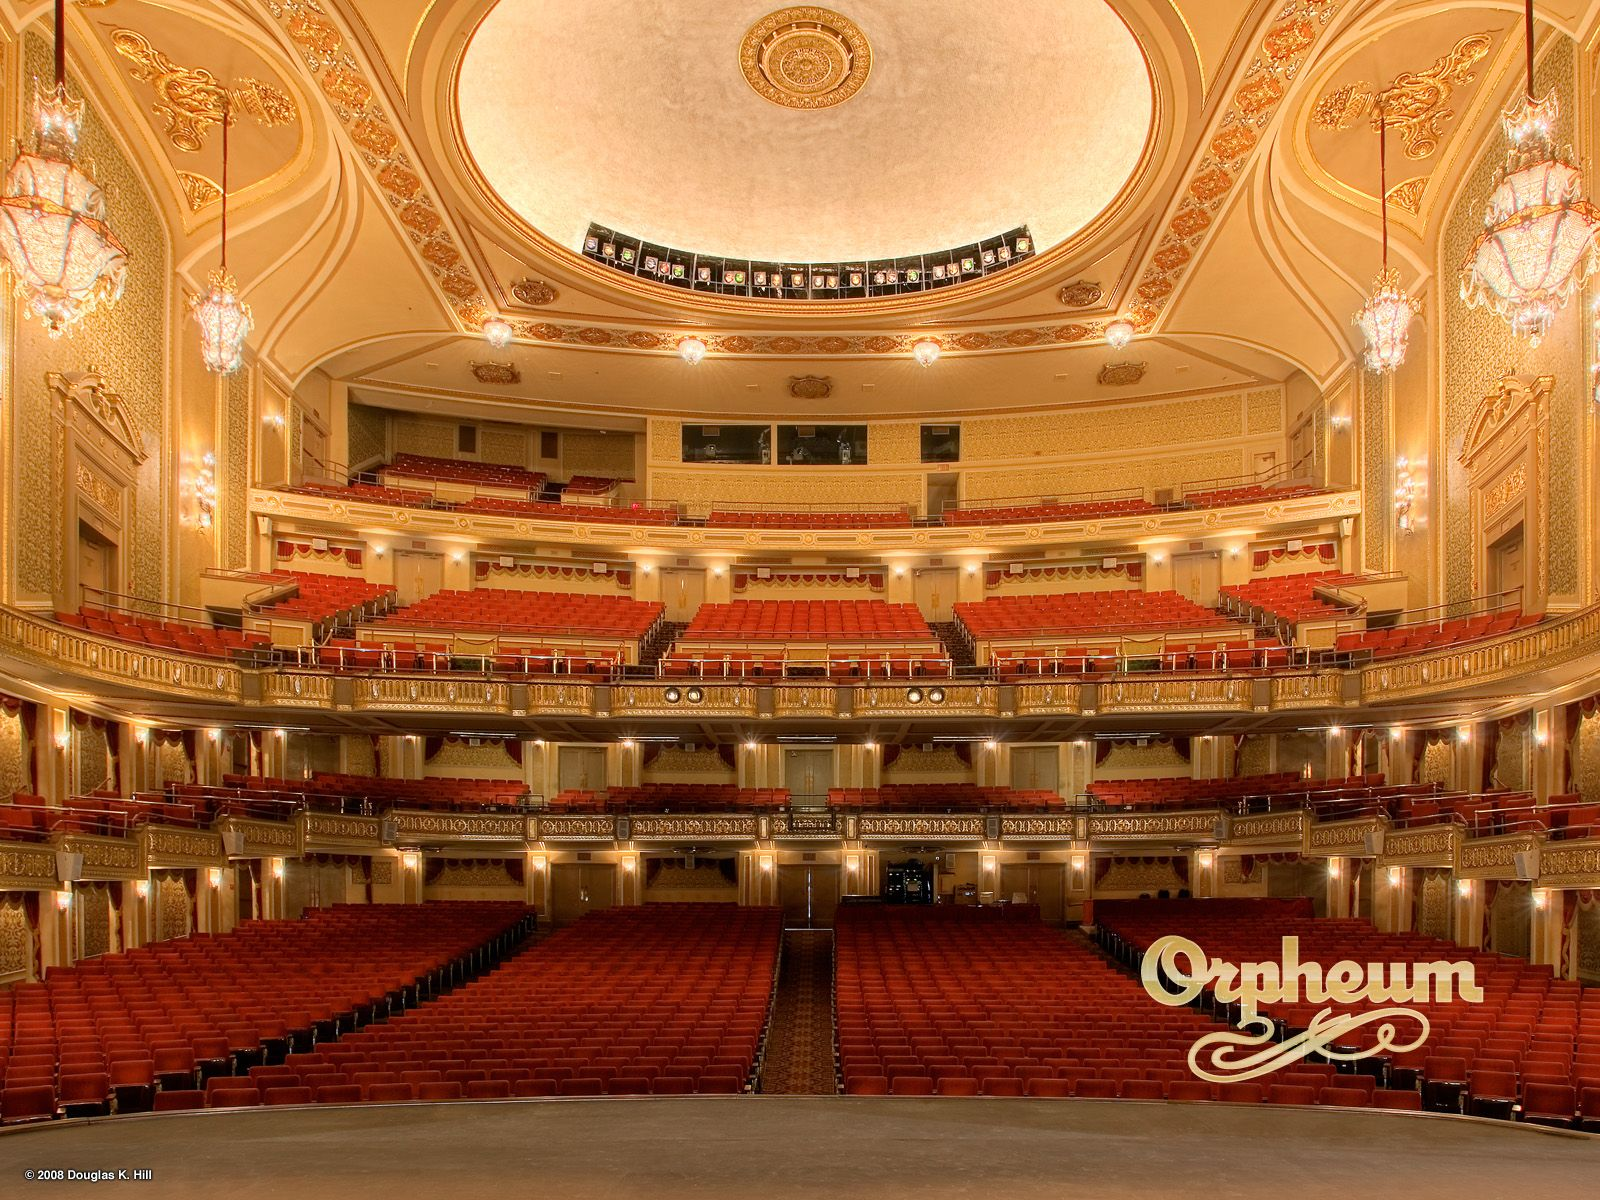 5 Orpheum theater here you can see the orchestra seating the rake